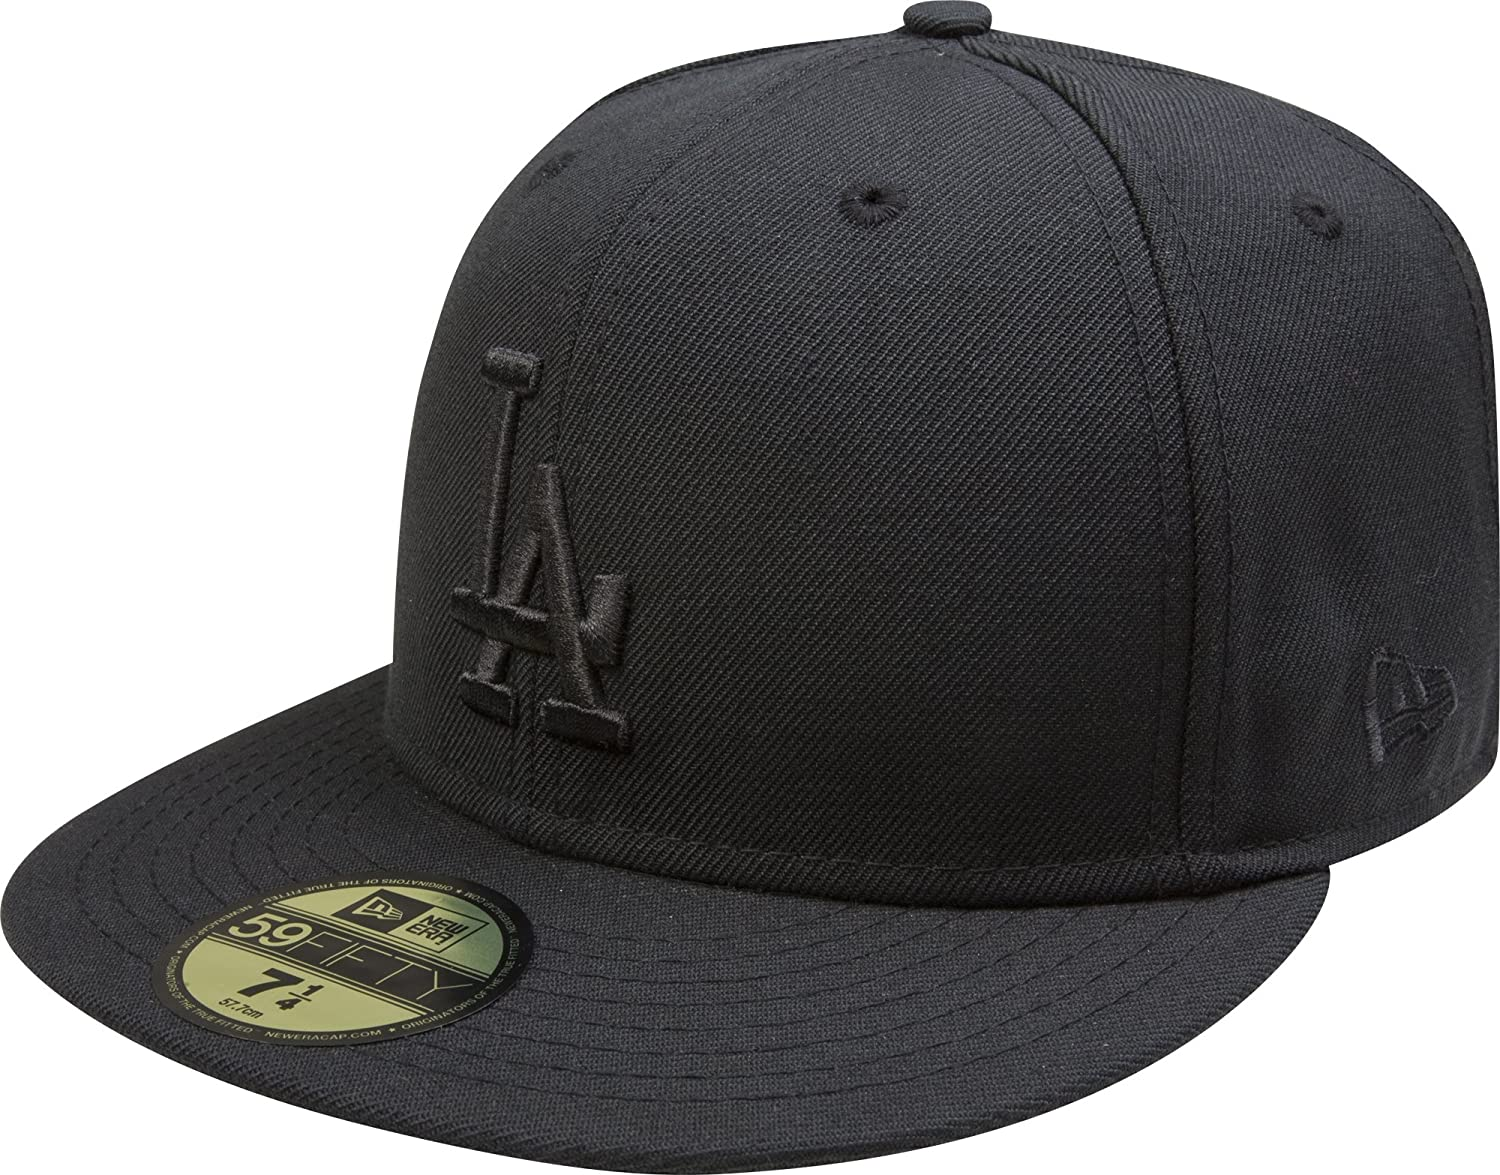 wholesale dealer fd741 7bc64 Amazon.com   New Era MLB Los Angeles Dodgers Black on Black 59FIFTY Fitted  Cap, 7 3 4   Sports Fan Baseball Caps   Sports   Outdoors